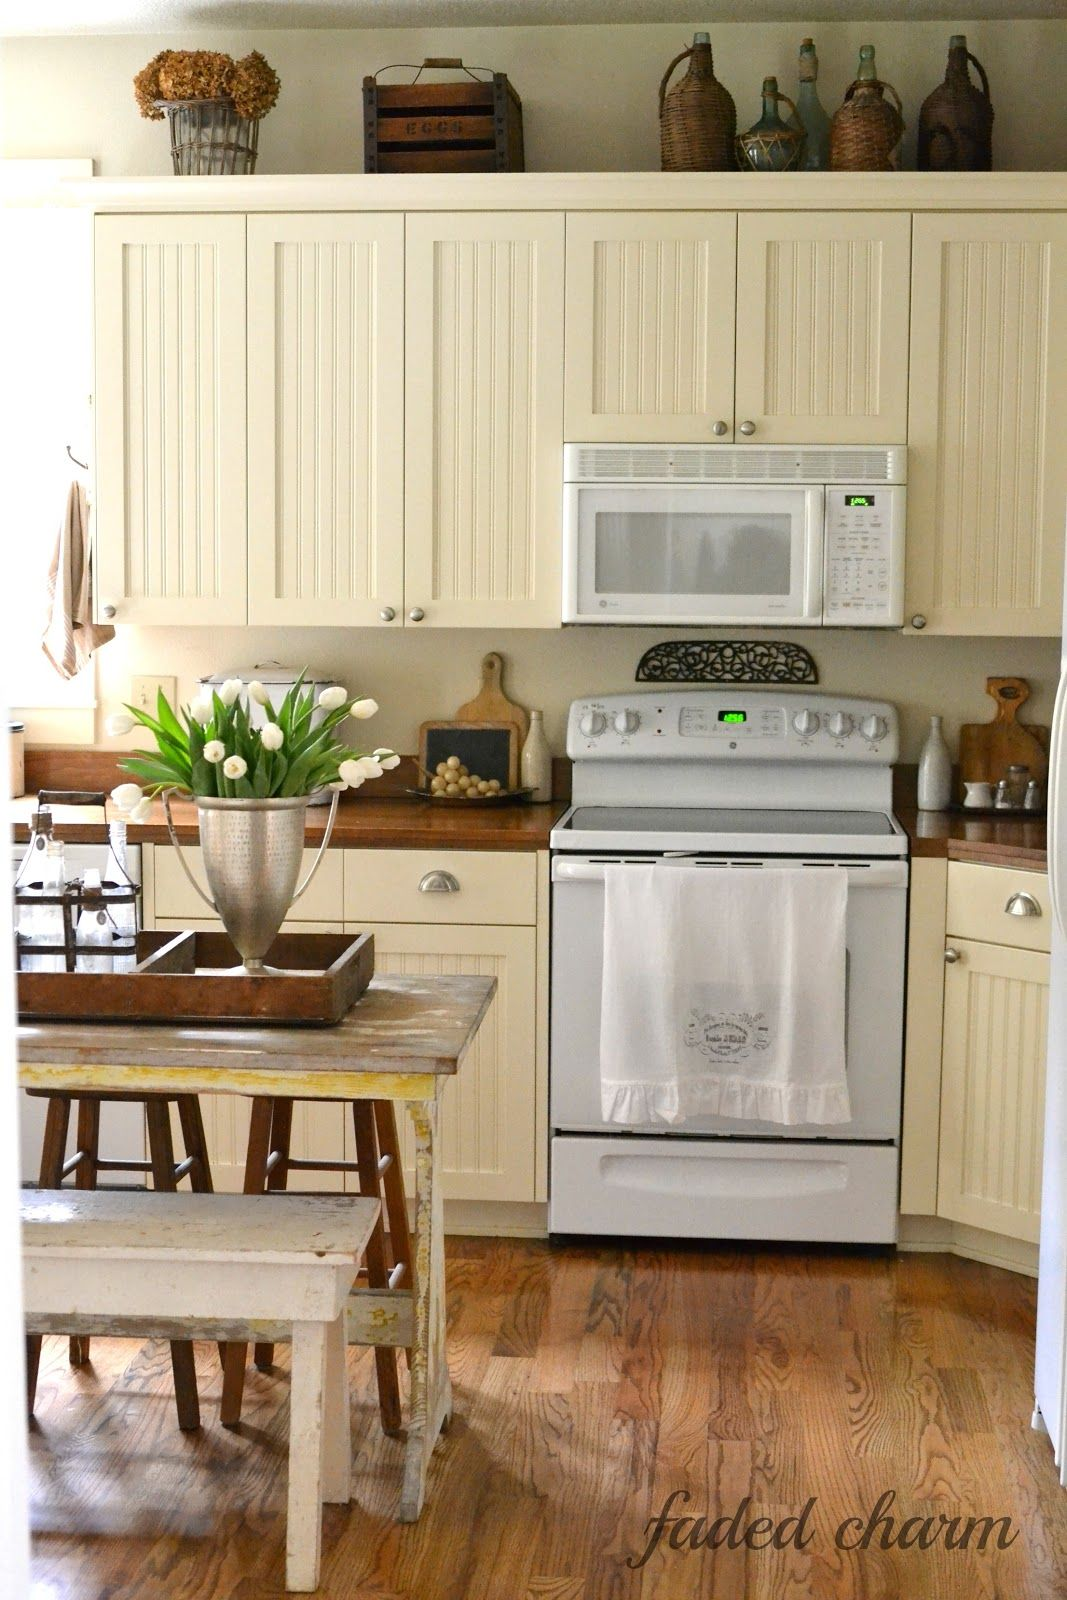 White Beadboard Kitchen Cabinets Faded Charm Love The Beadboard Cabinets Do With